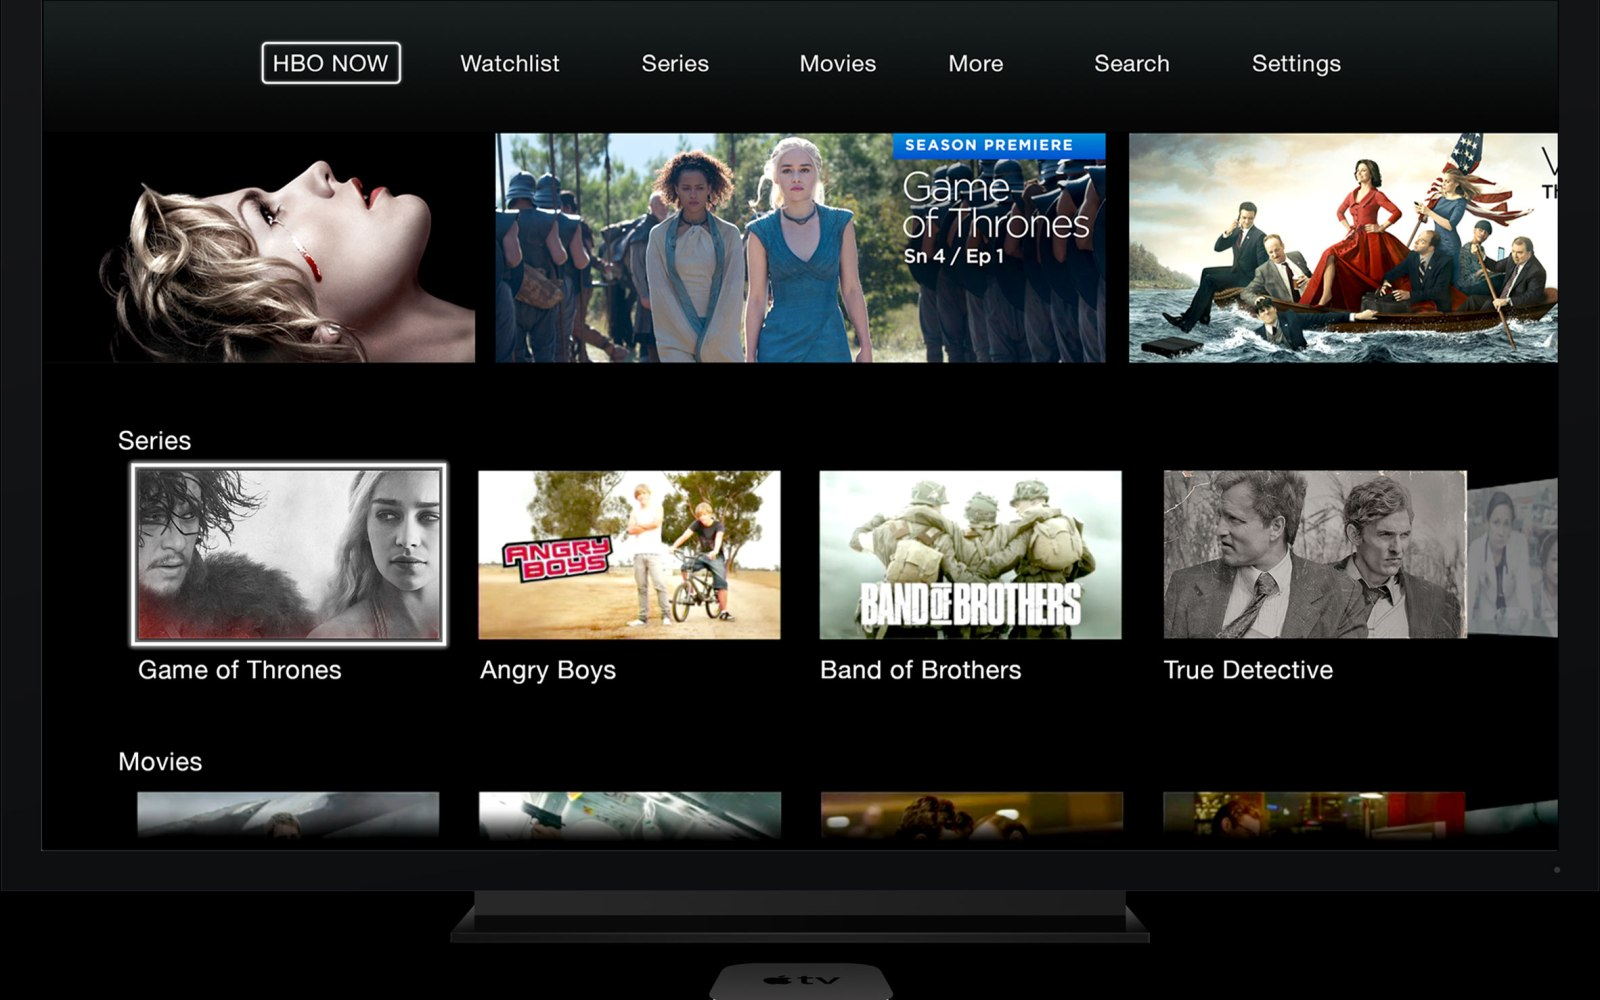 HBO NOW standalone streaming service debuts on Apple TV, iPhone & iPad with 1-month free trial